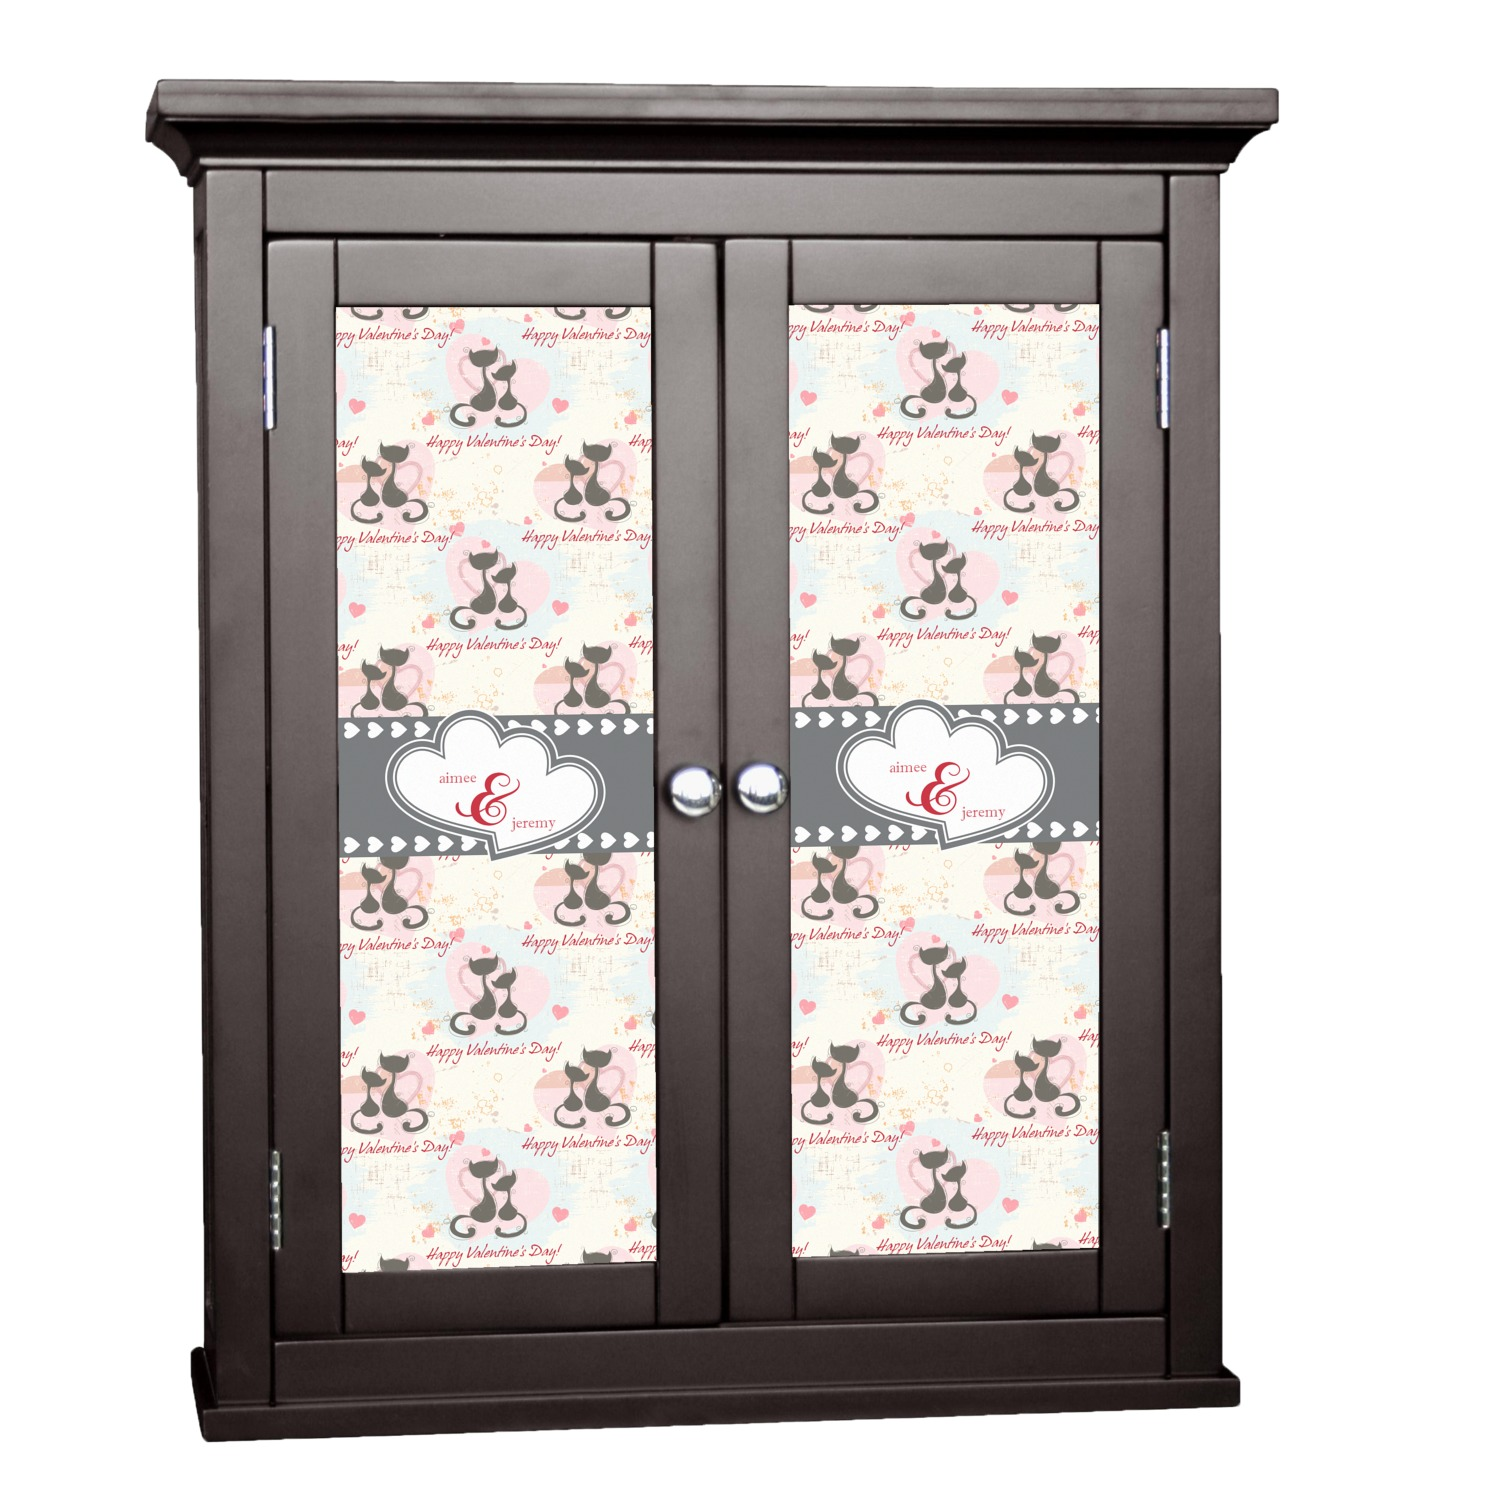 Cats In Love Cabinet Decal Large Personalized